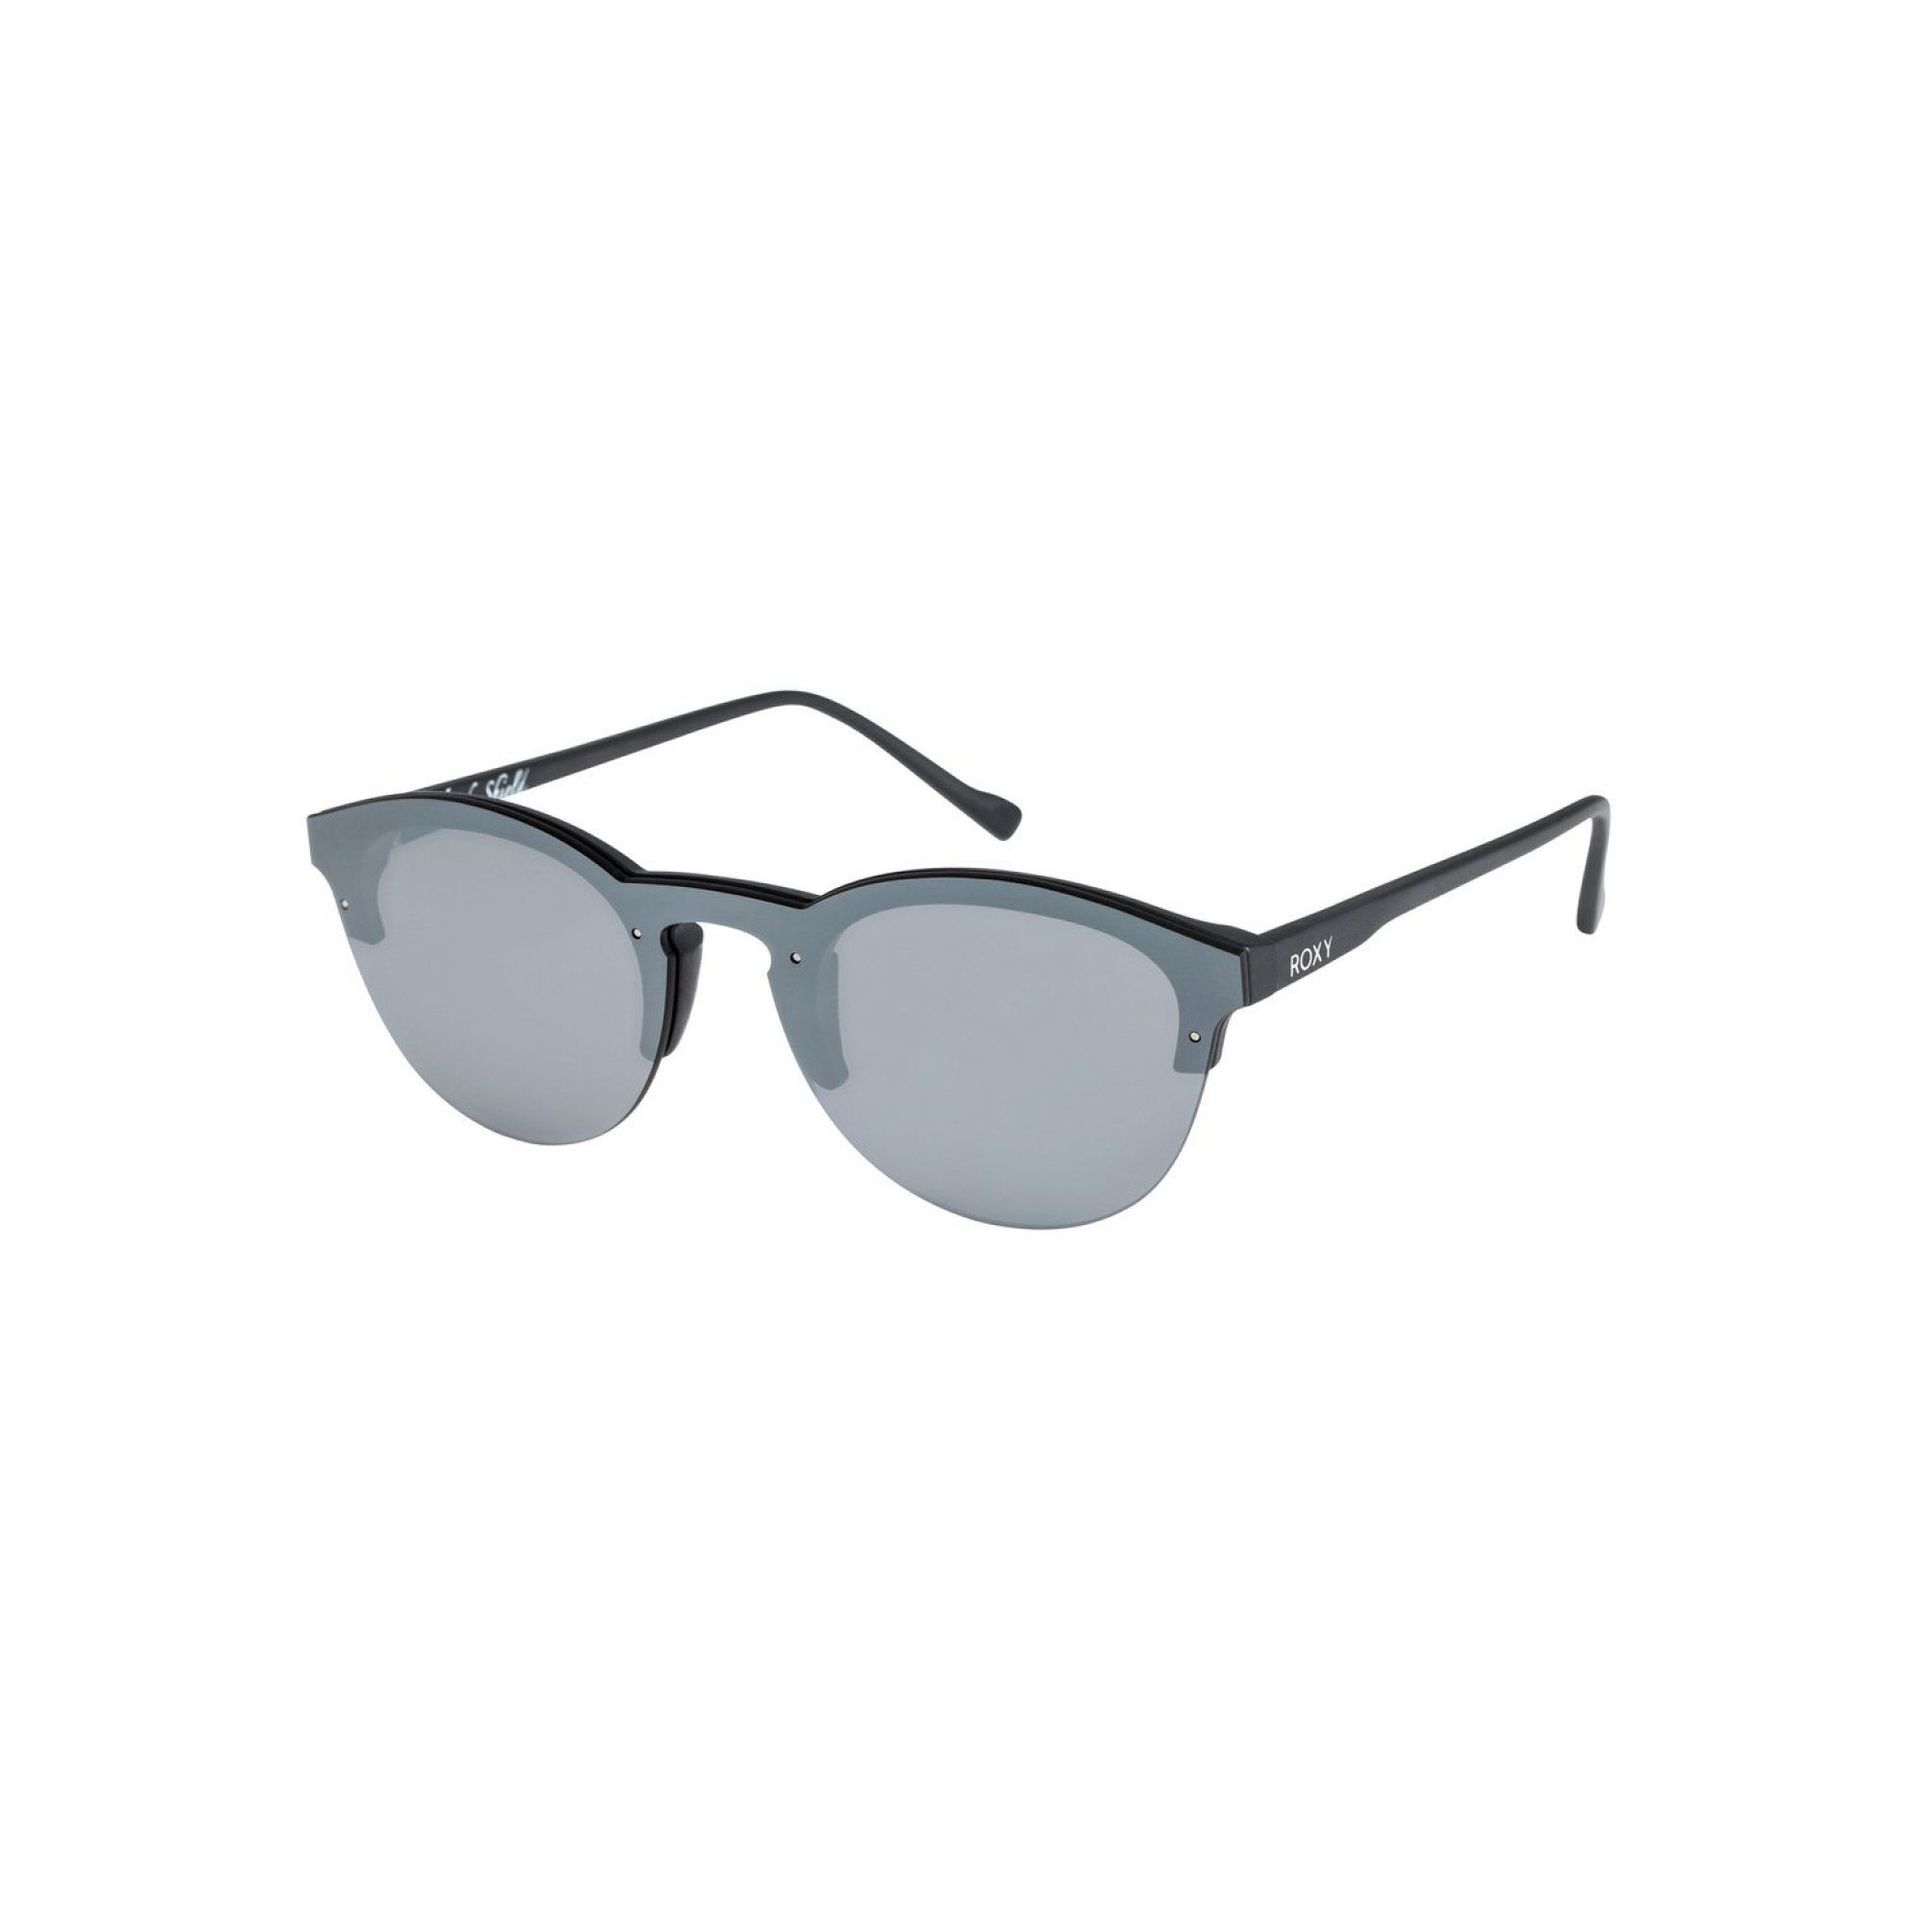 OKULARY ROXY LADY SHIELD XKSS 1